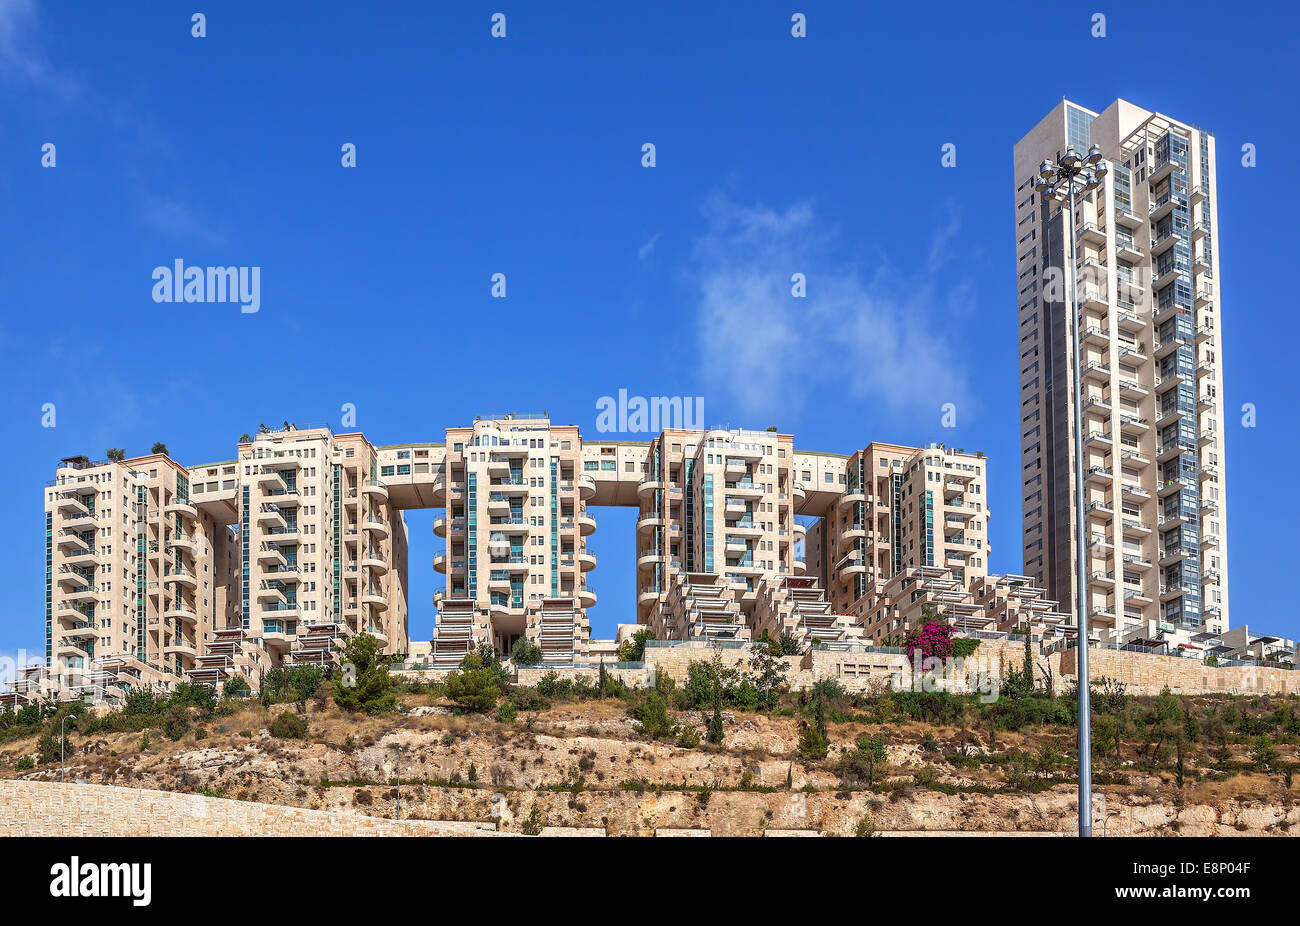 Moderno complesso residenziale sotto il cielo blu a Gerusalemme, Israele. Immagini Stock